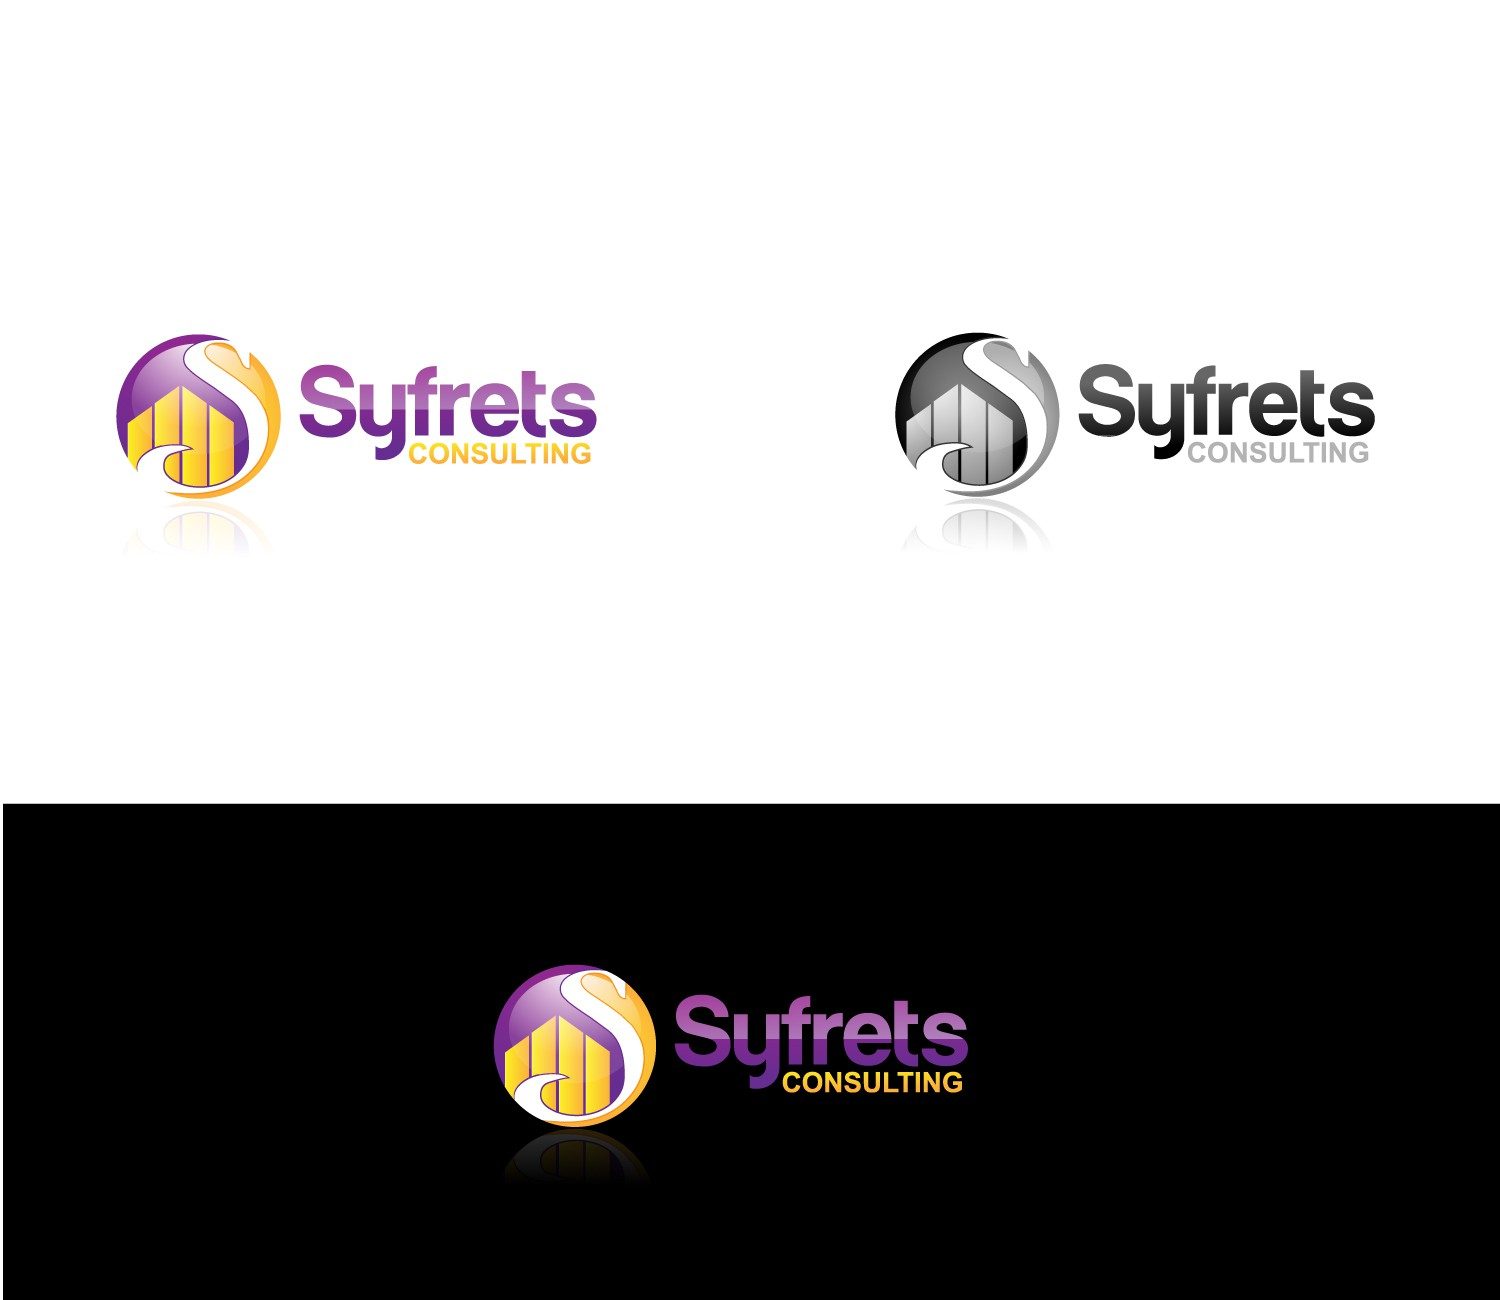 Help Syfrets Consulting with a new logo